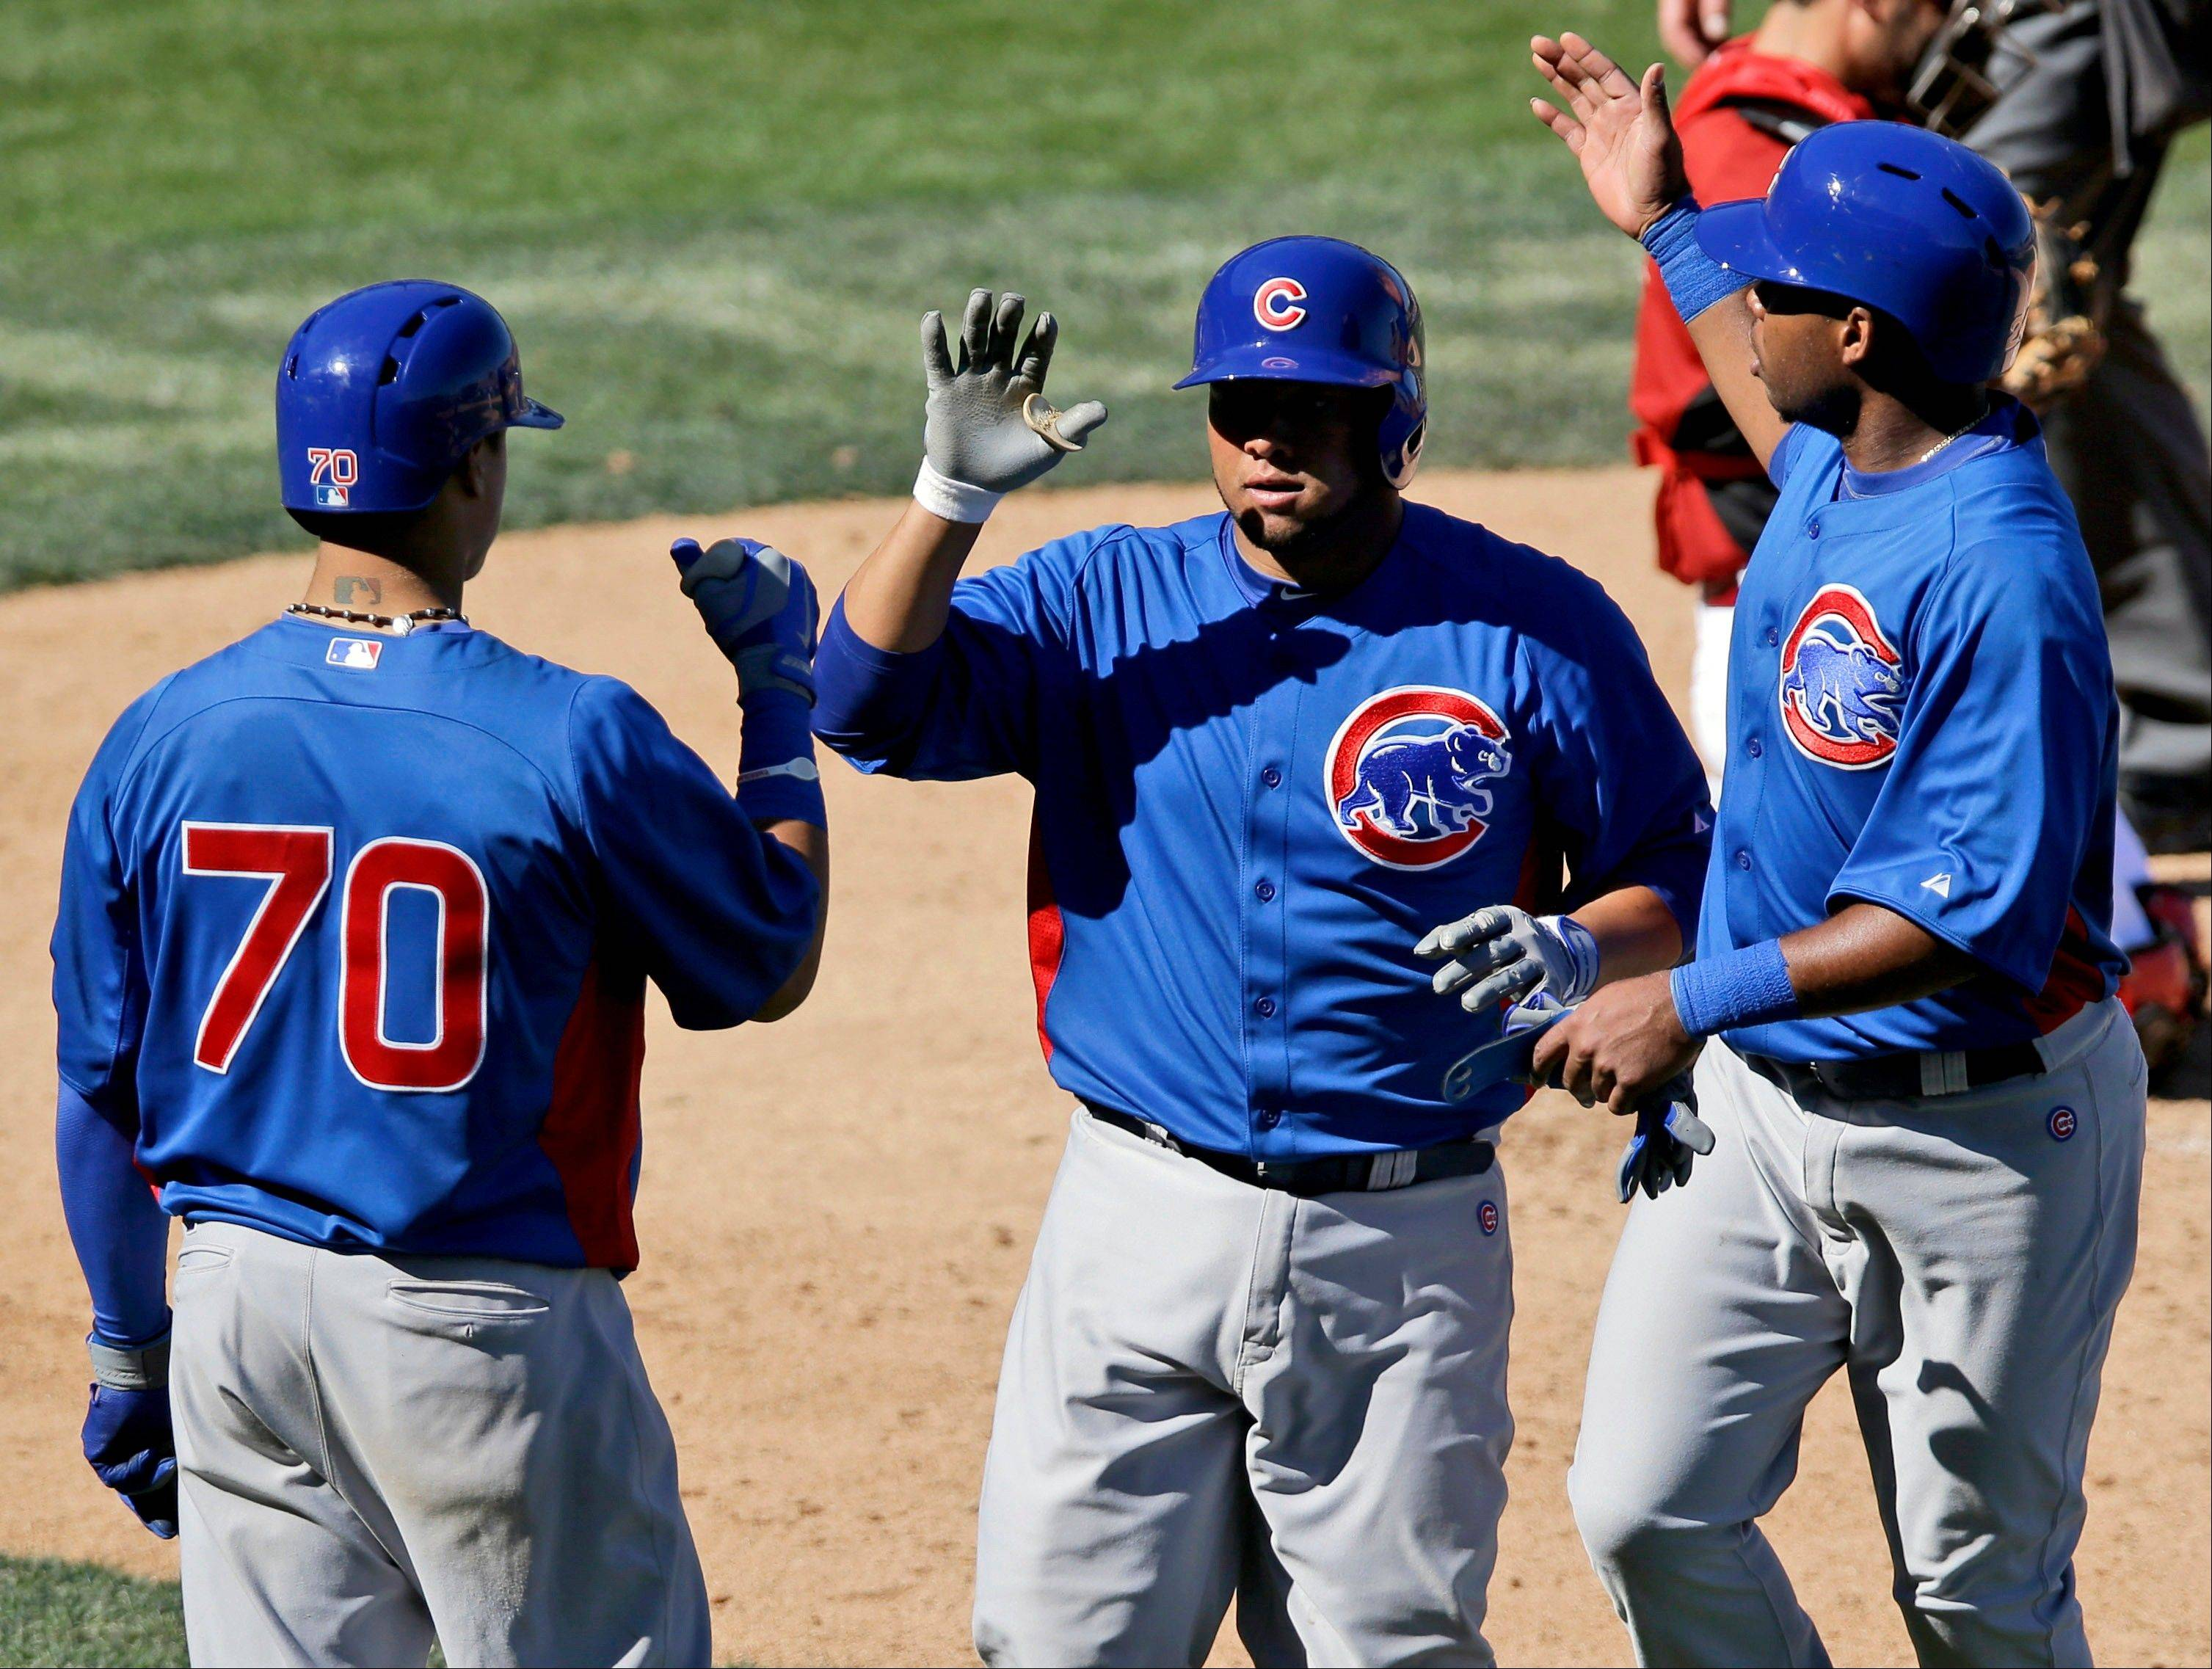 Chicago Cubs' Welington Castillo, center, is greeted at home plate by Javier Baez (70) and Luis Valbuena, right, after his two-run home run against the Arizona Diamondbacks during the sixth inning of an exhibition spring training baseball game, Monday, March 11, 2013, in Scottsdale, Ariz. (AP Photo/Marcio Jose Sanchez)